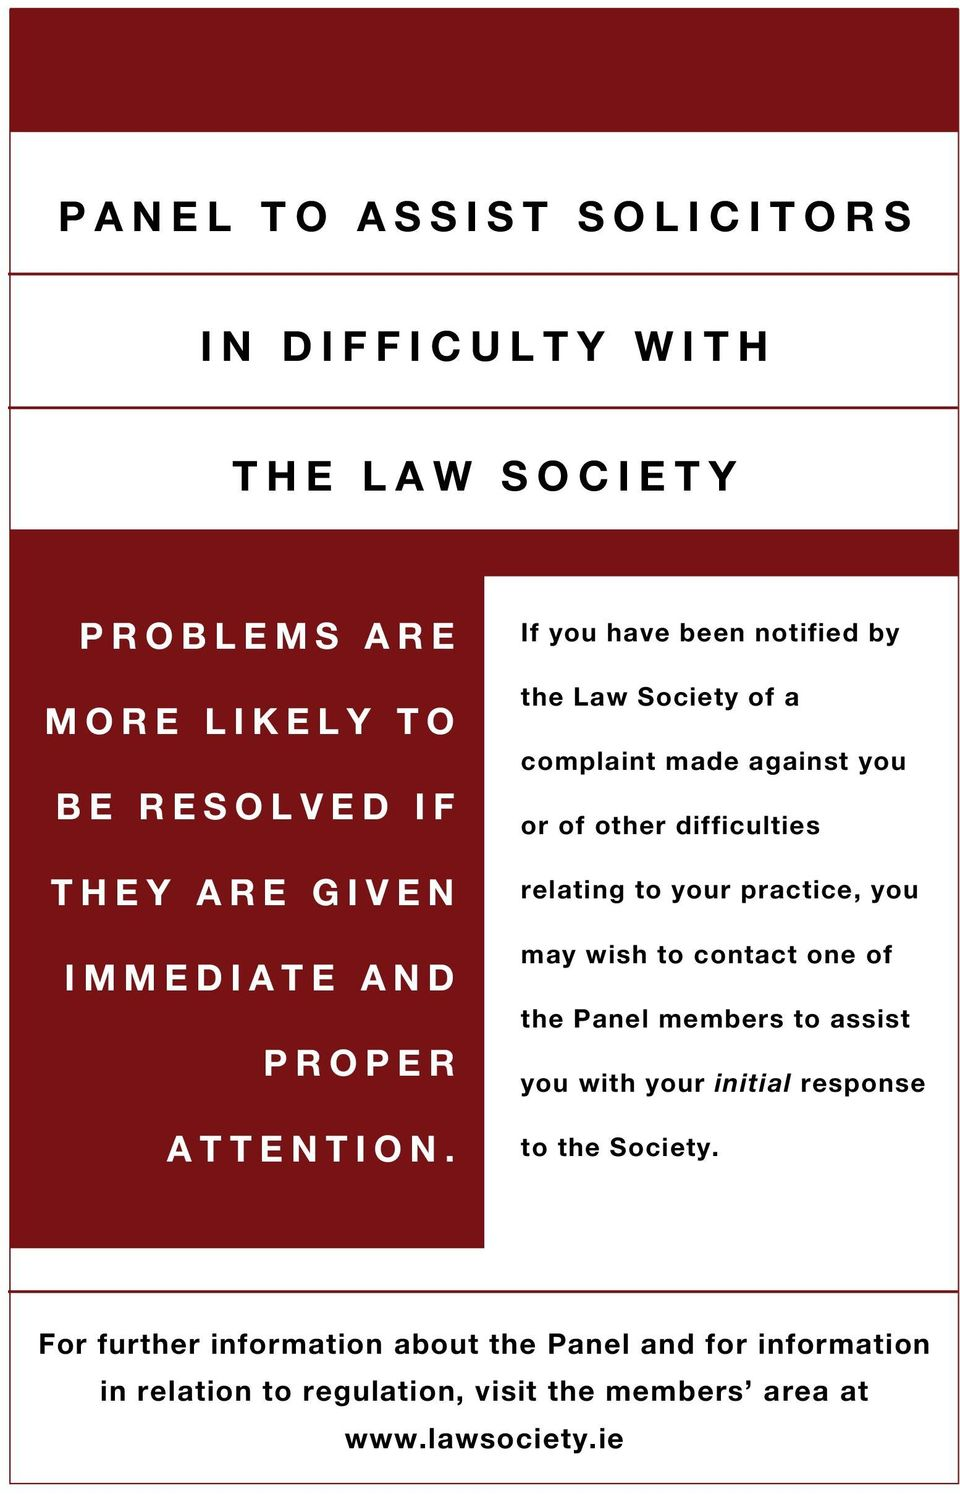 If you have been notified by the Law Society of a complaint made against you or of other difficulties relating to your practice,